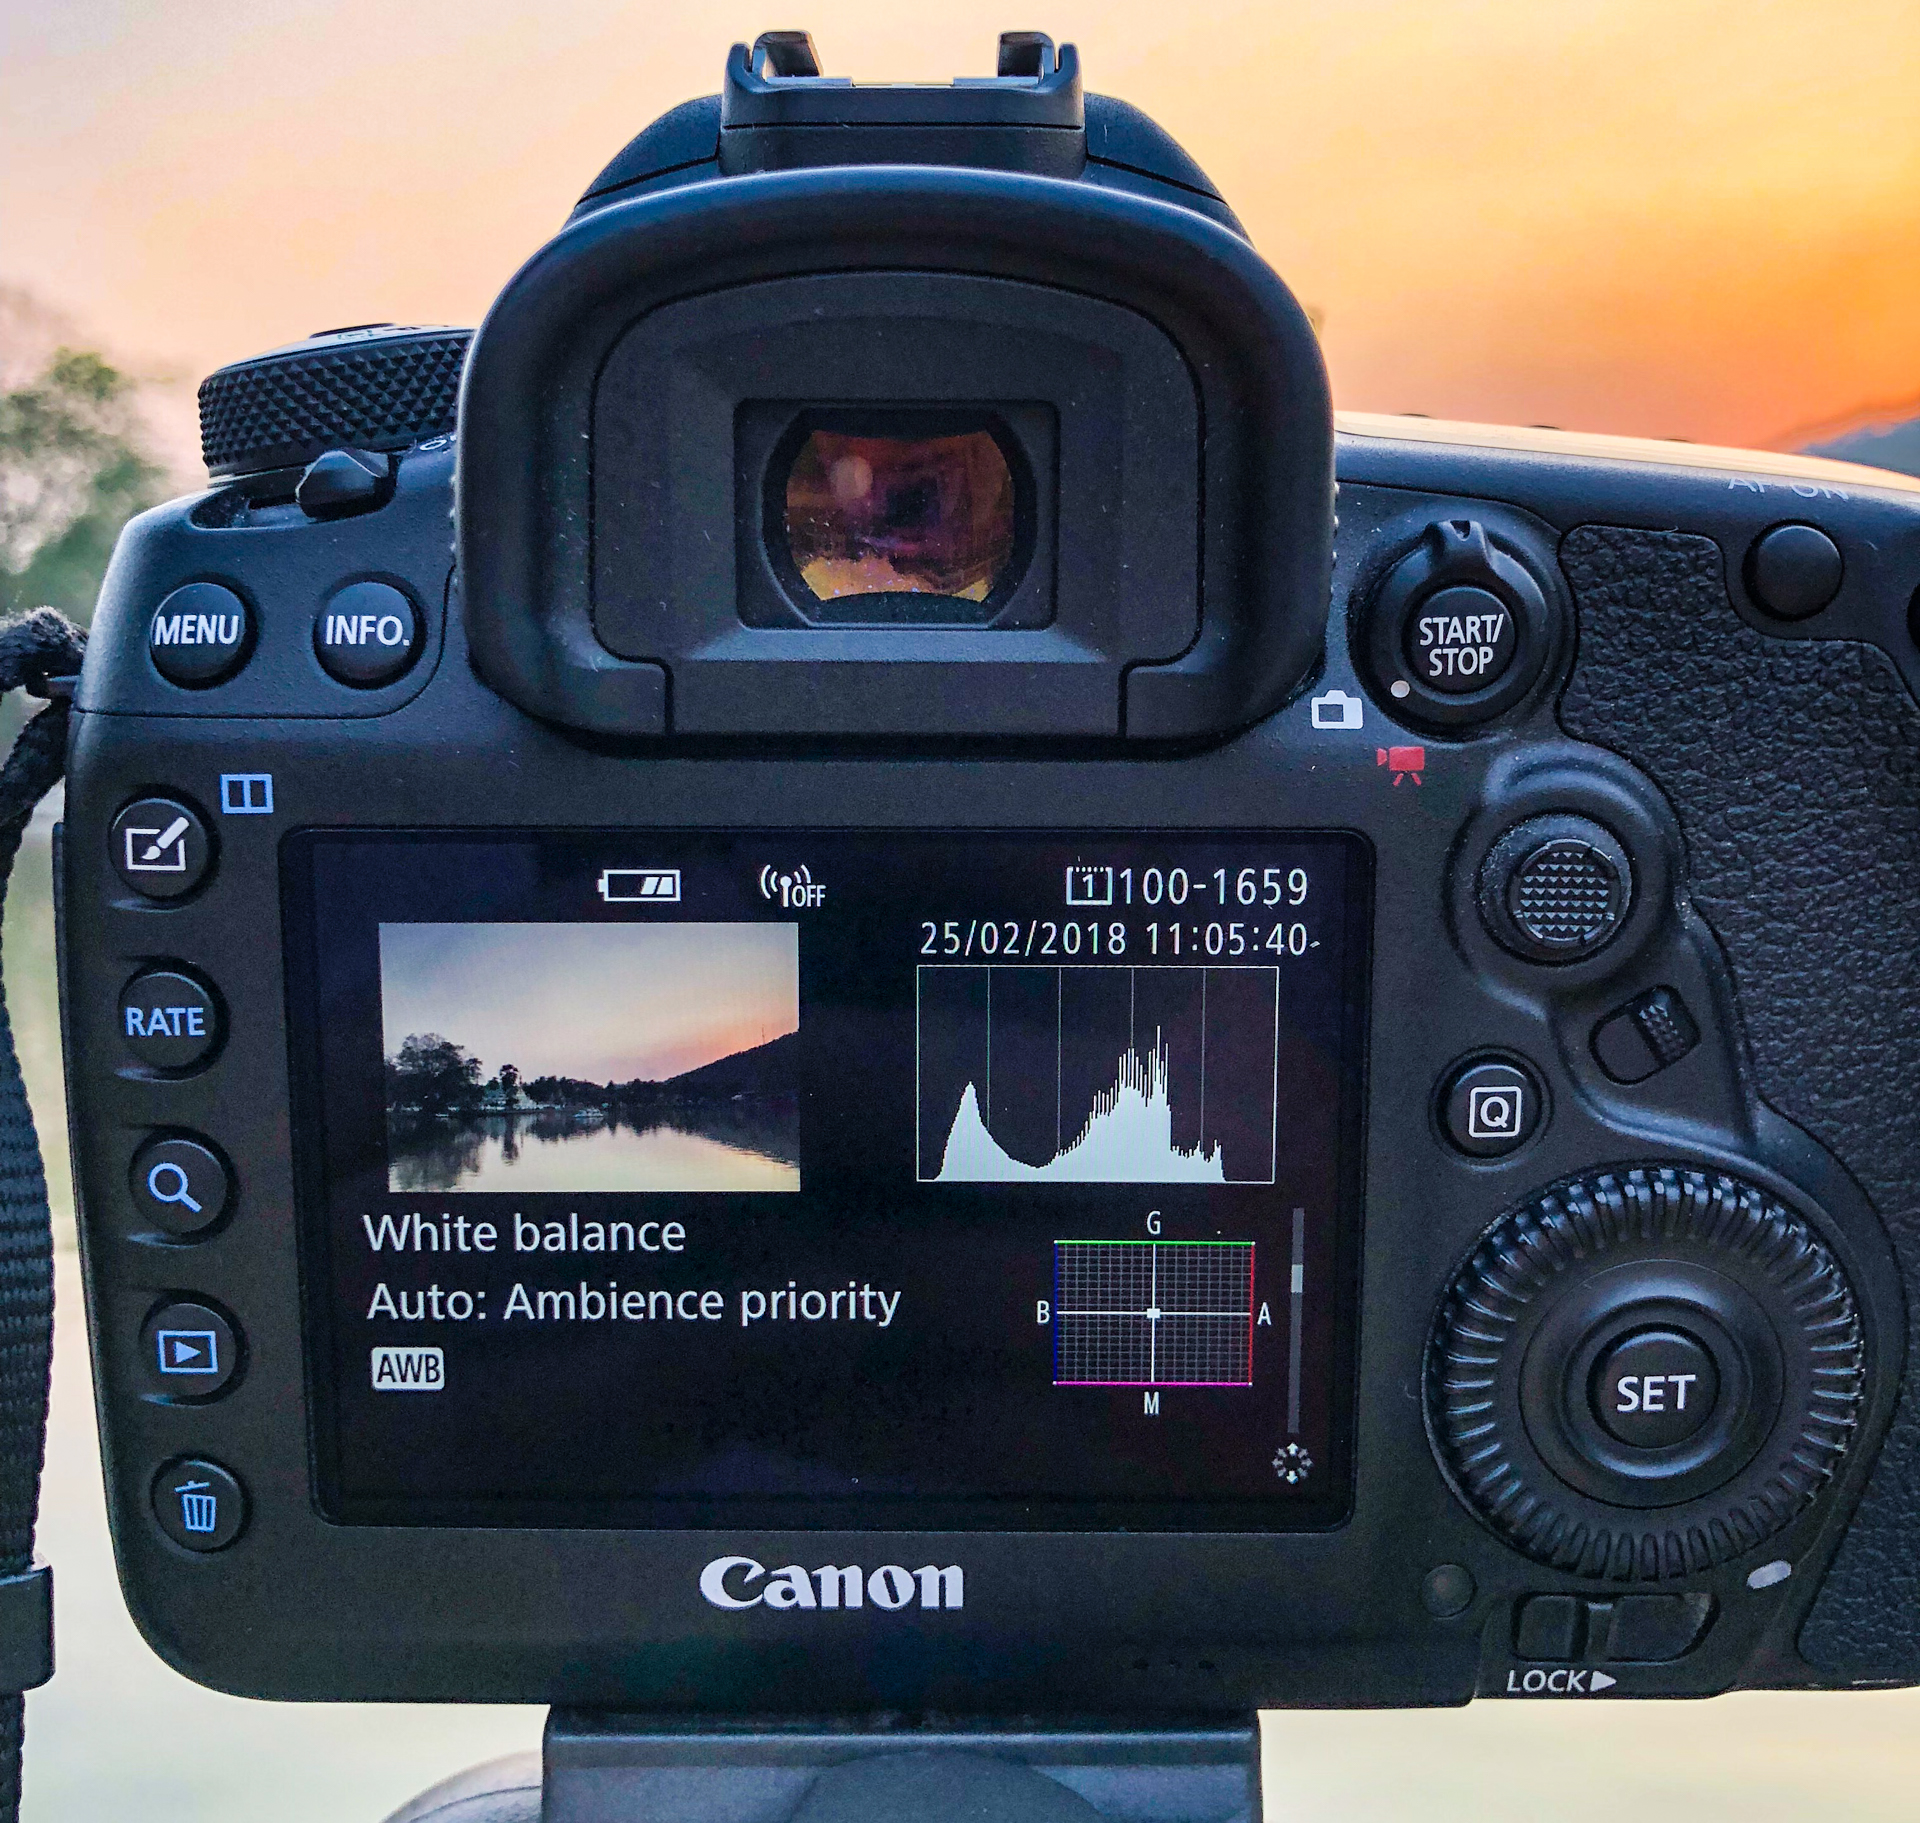 The LCD screen of a DSLR camera showing a histogram